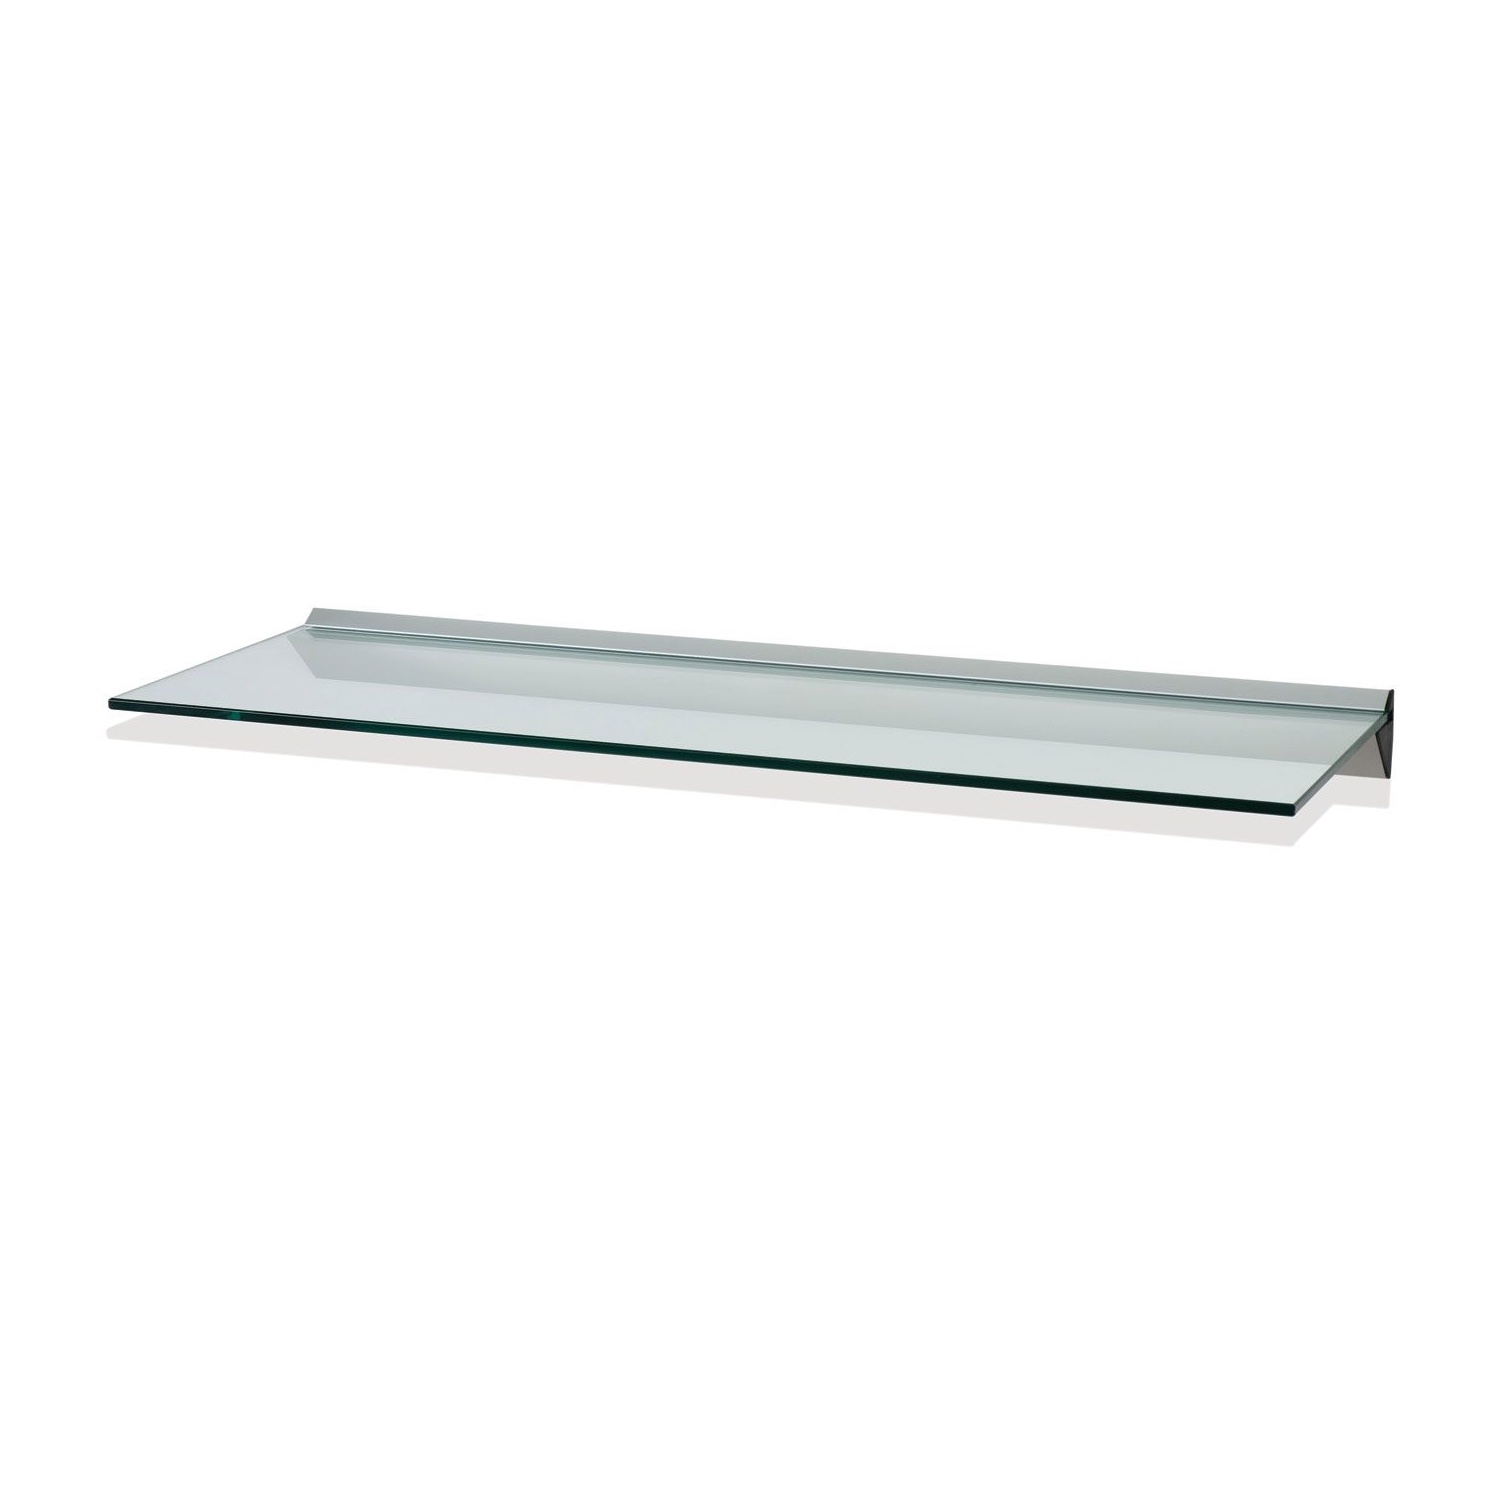 Floating Glass Shelves For Cable Box Rectangle Two Clear Glass Throughout Clear Glass Floating Shelves (Image 11 of 15)